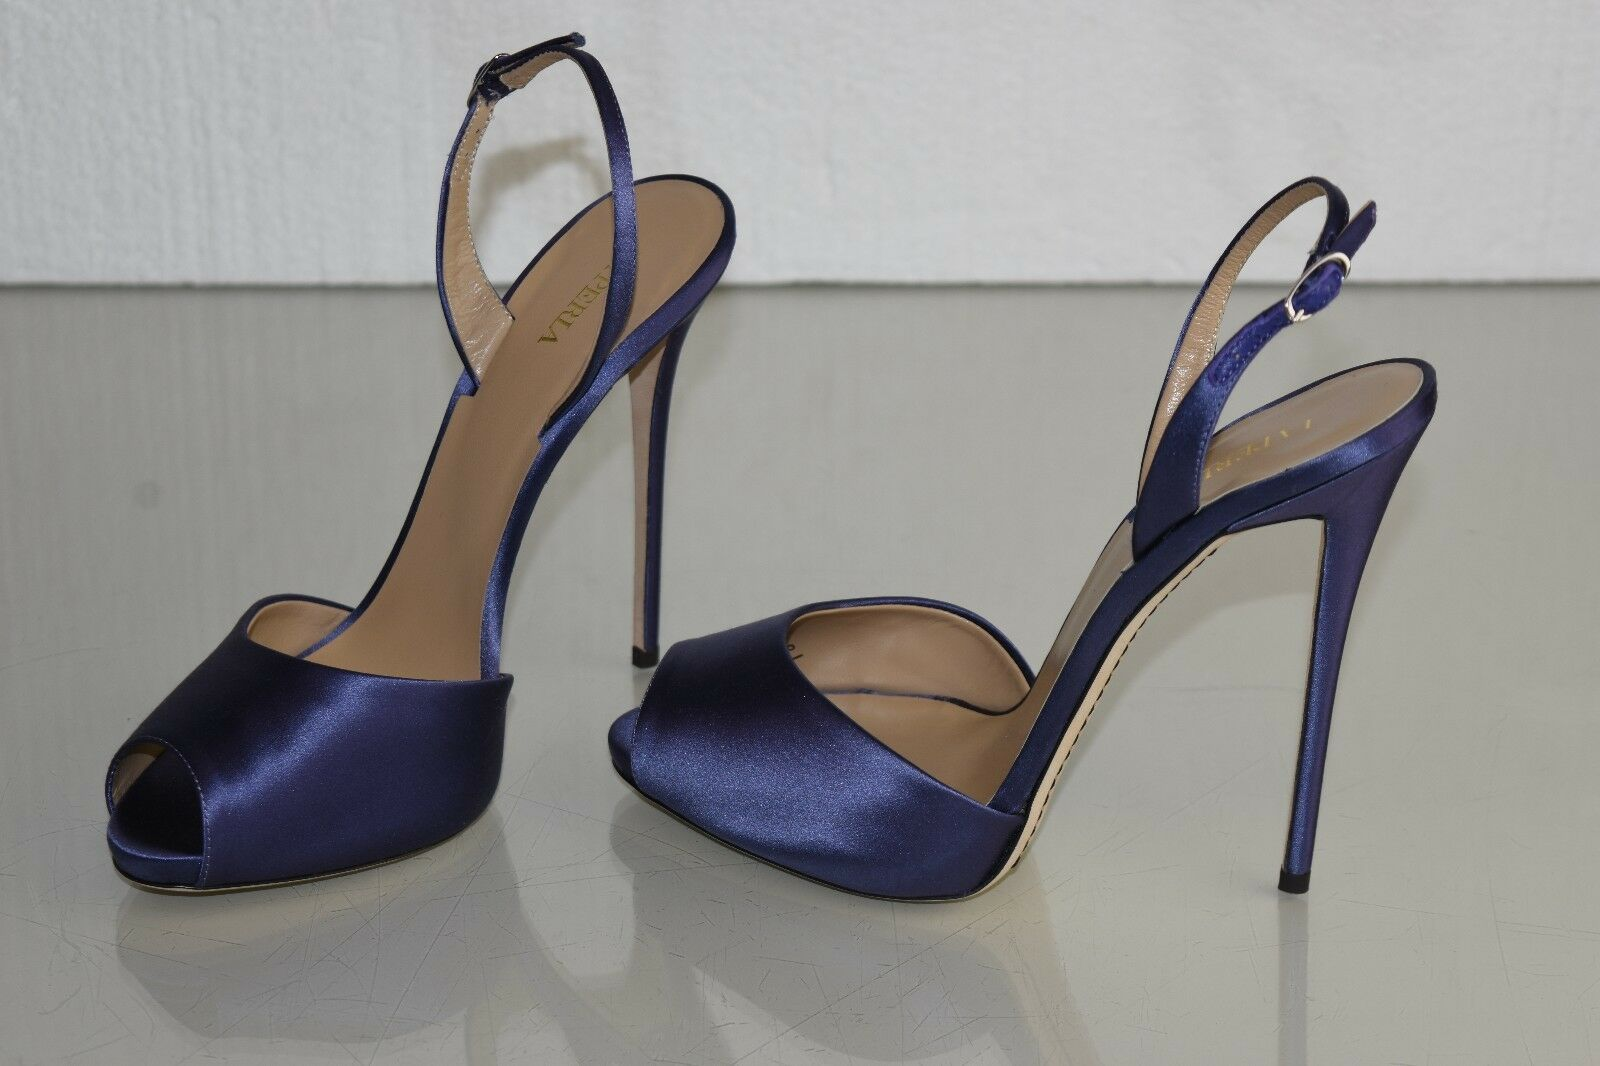 875 NEW LA Perla shoes bluee Satin High Heel Slingback Peep Toe Pumps shoes 40